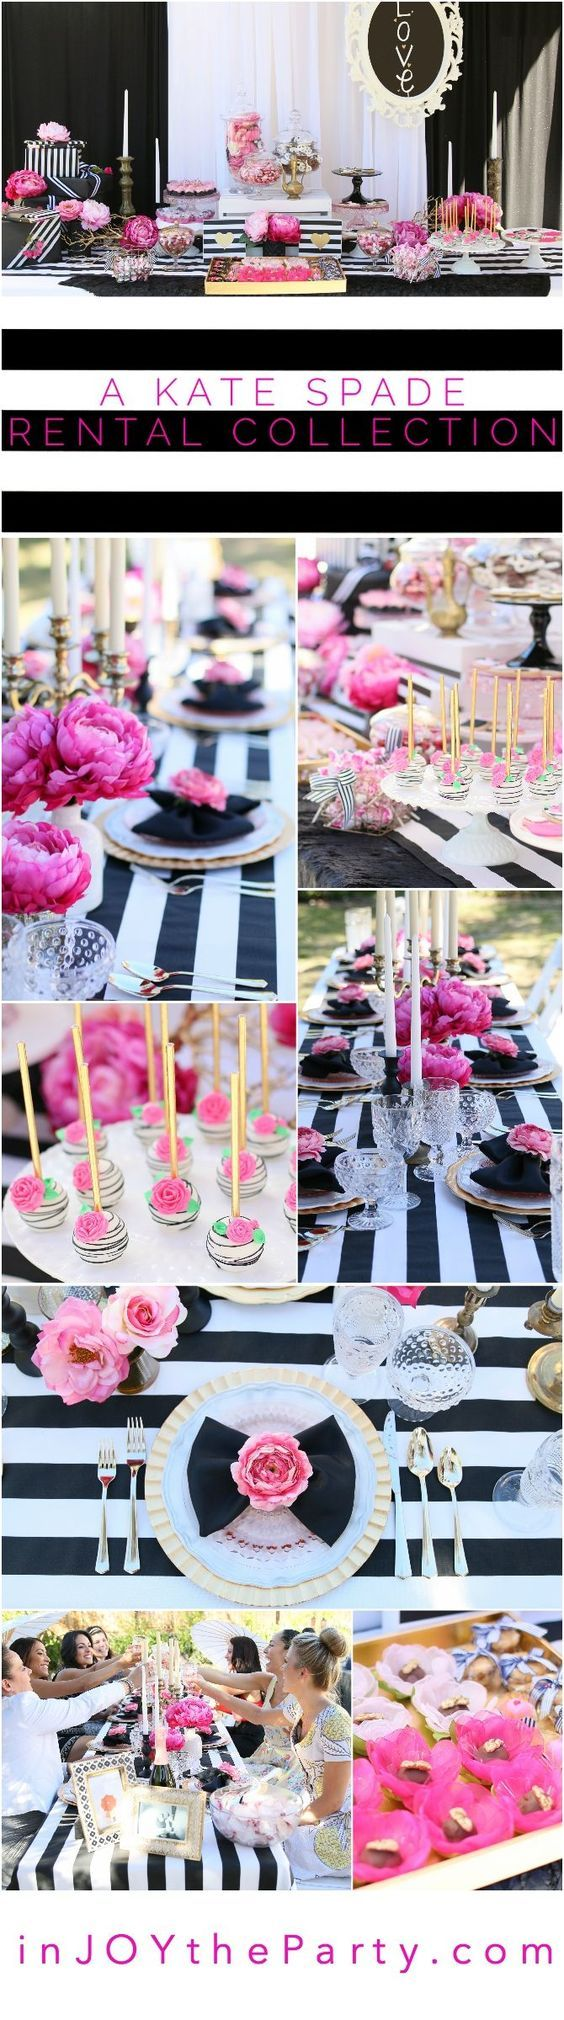 """We rent it, you design it! You'll want to find a reason to celebrate with our """"Pink Please"""" Kate Spade Rental Collection! Everything here is prepackaged and ready to rent. Yup, even the flowers! Black & White Stripes + Pink Peonies + gold accents = LOVE! Perfect for a bridal shower, baby shower, or birthday party for your favorite fashionista. @inJOYtheParty"""